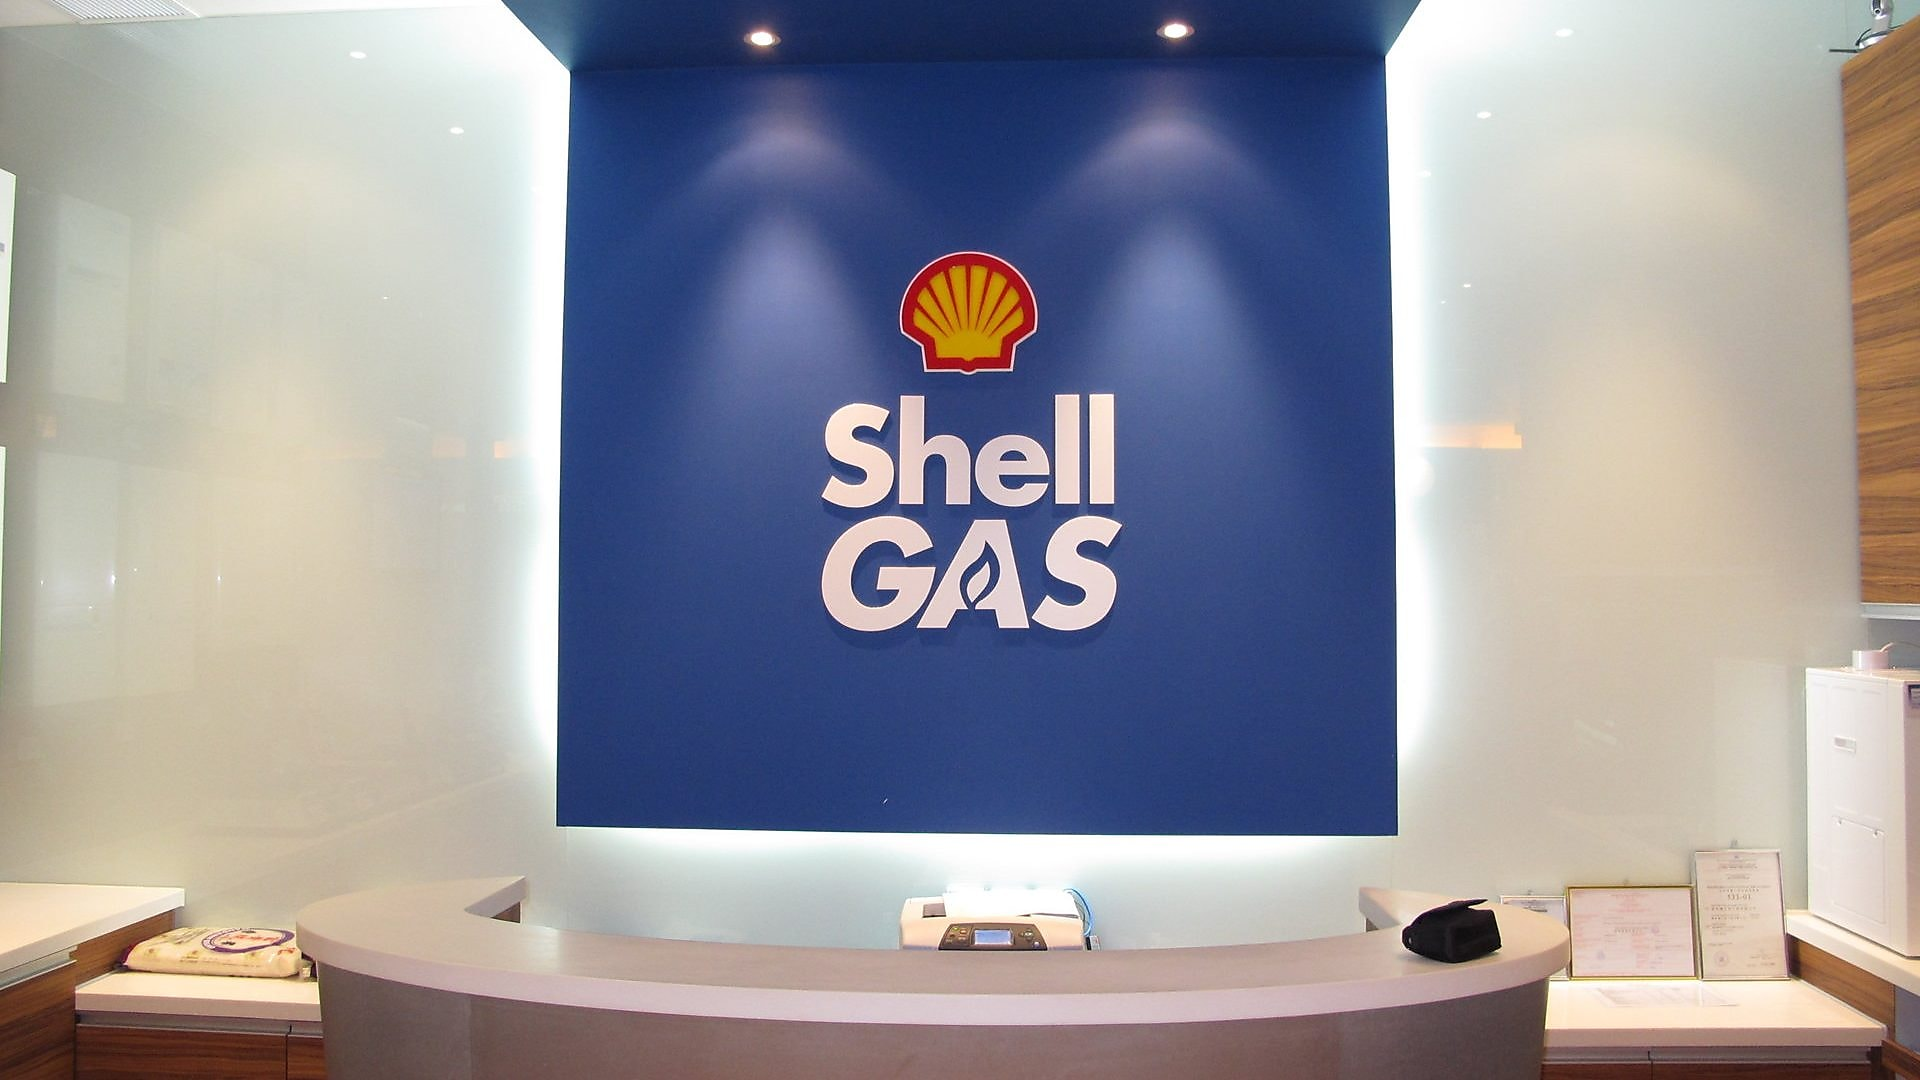 Shell Gas (LPG) for Home